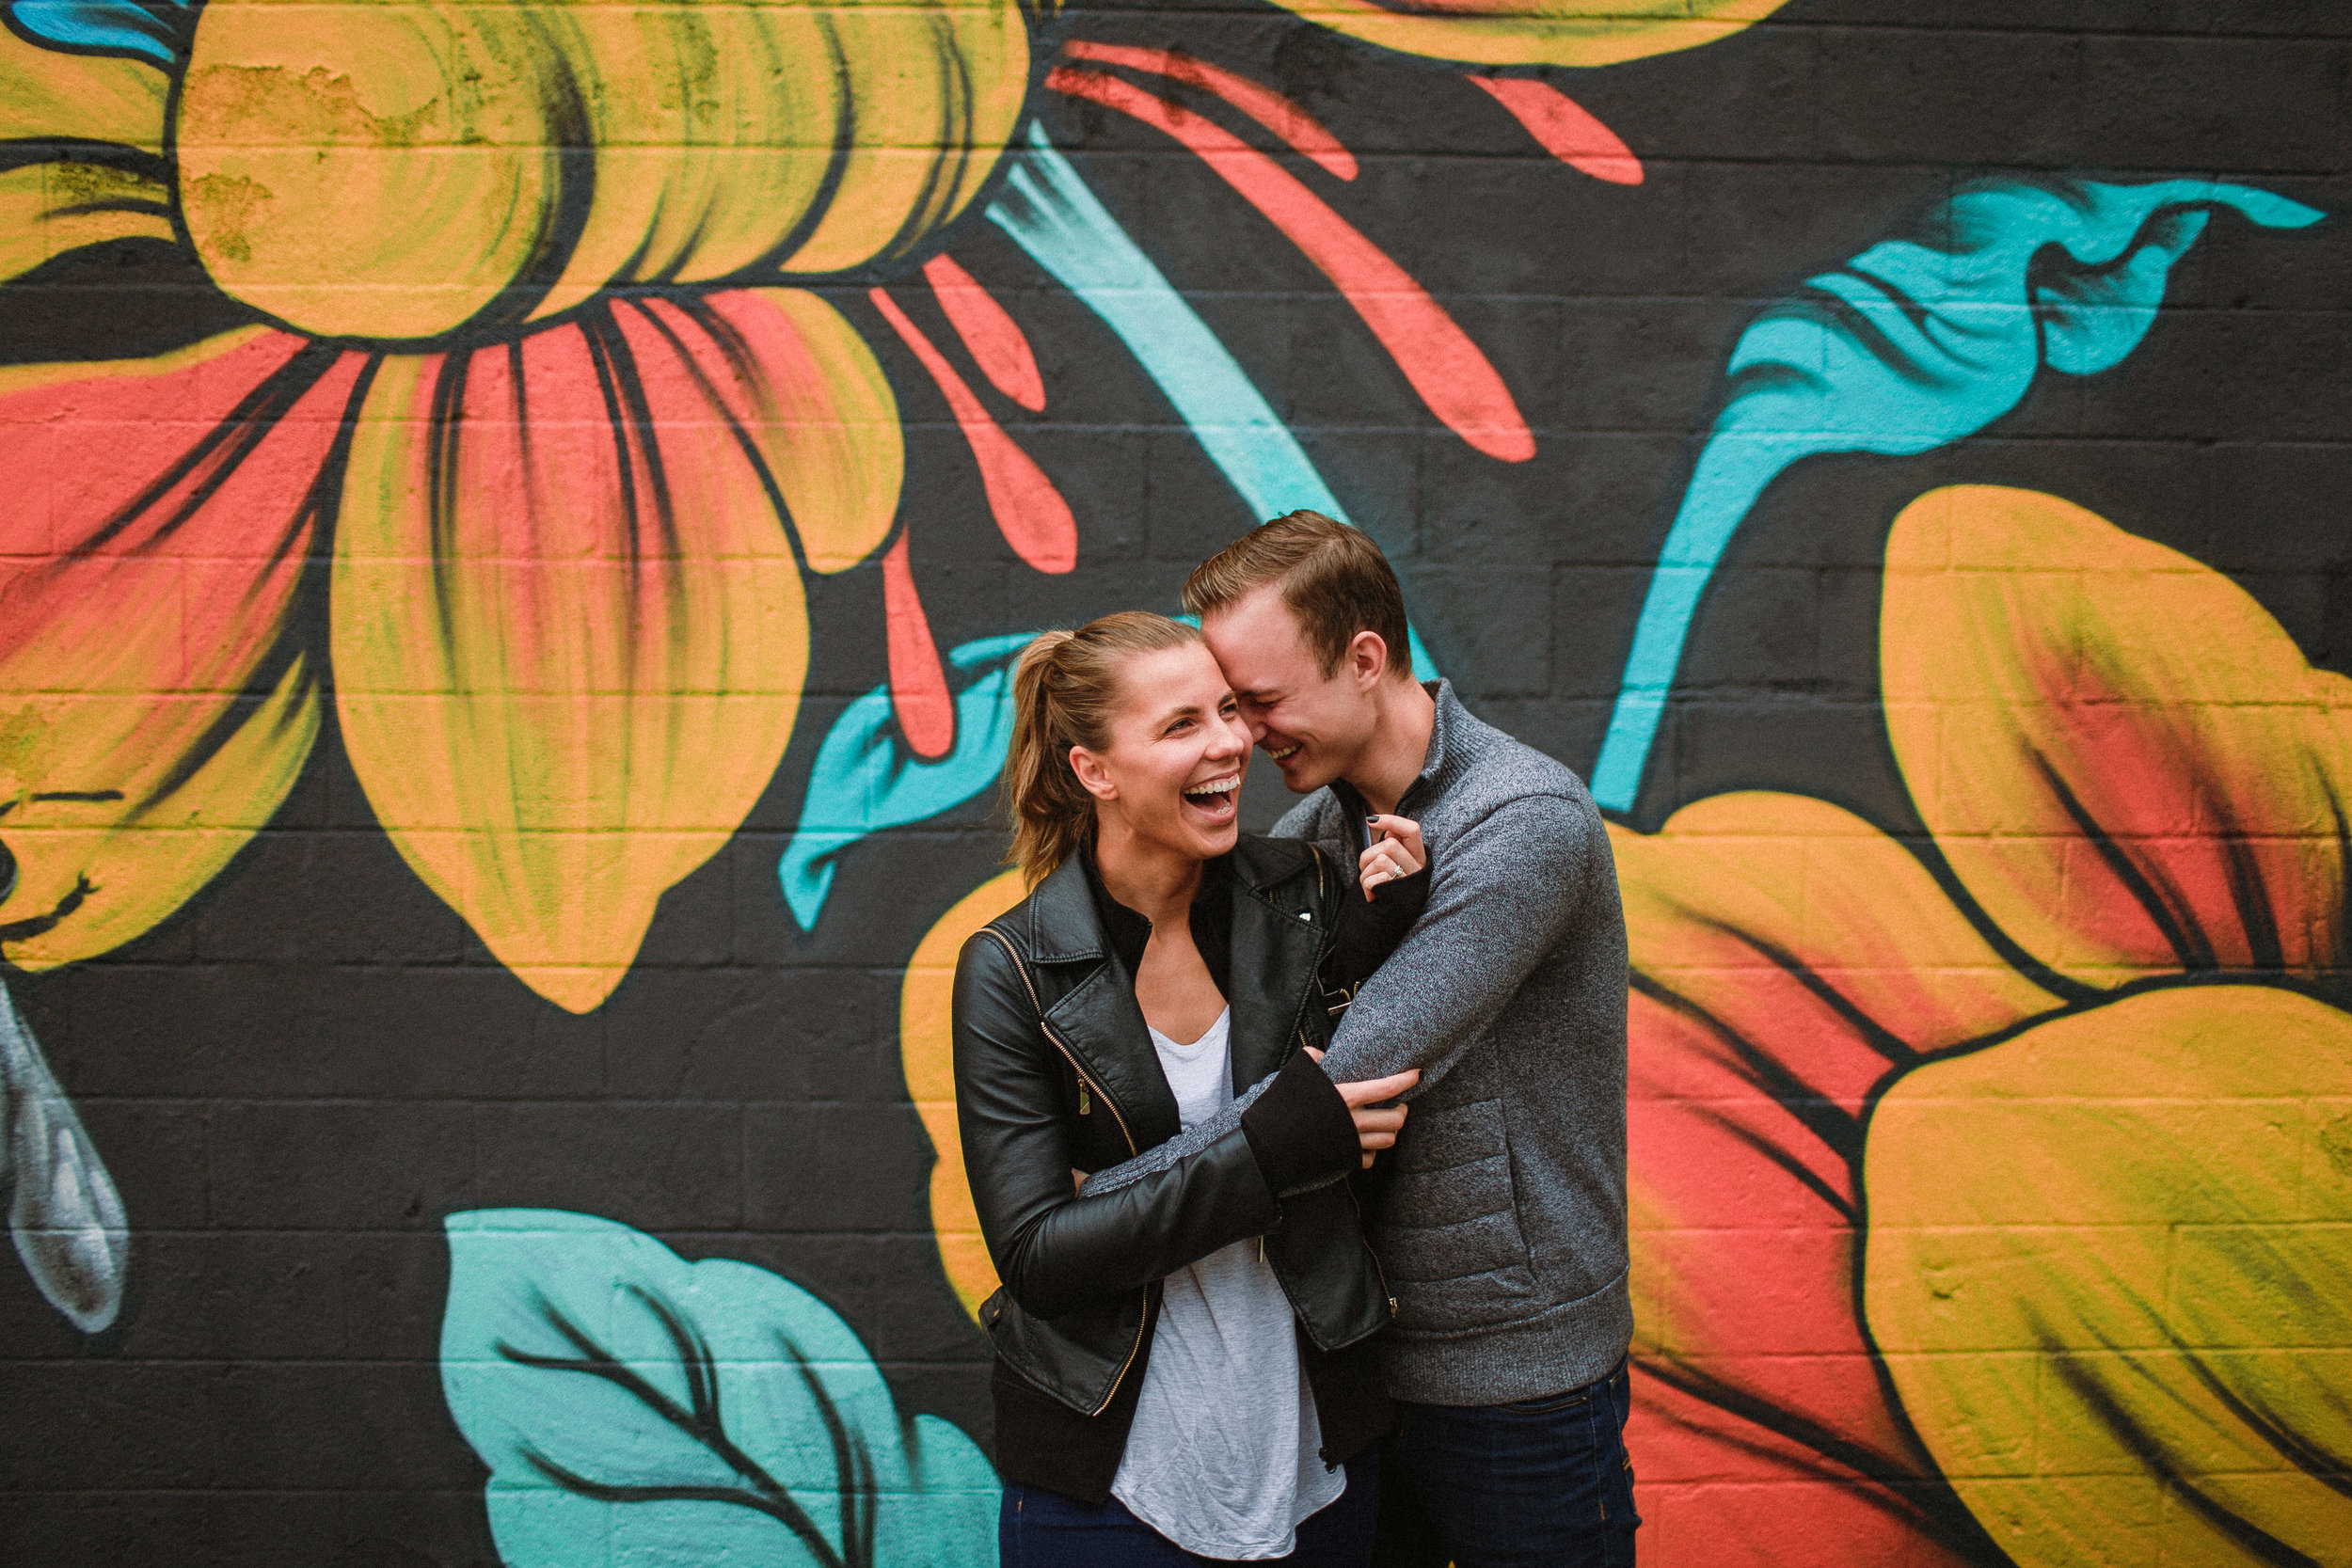 Chicago Grand Rapids Intimate Engagement Greenhouse Floral Shop Wedding